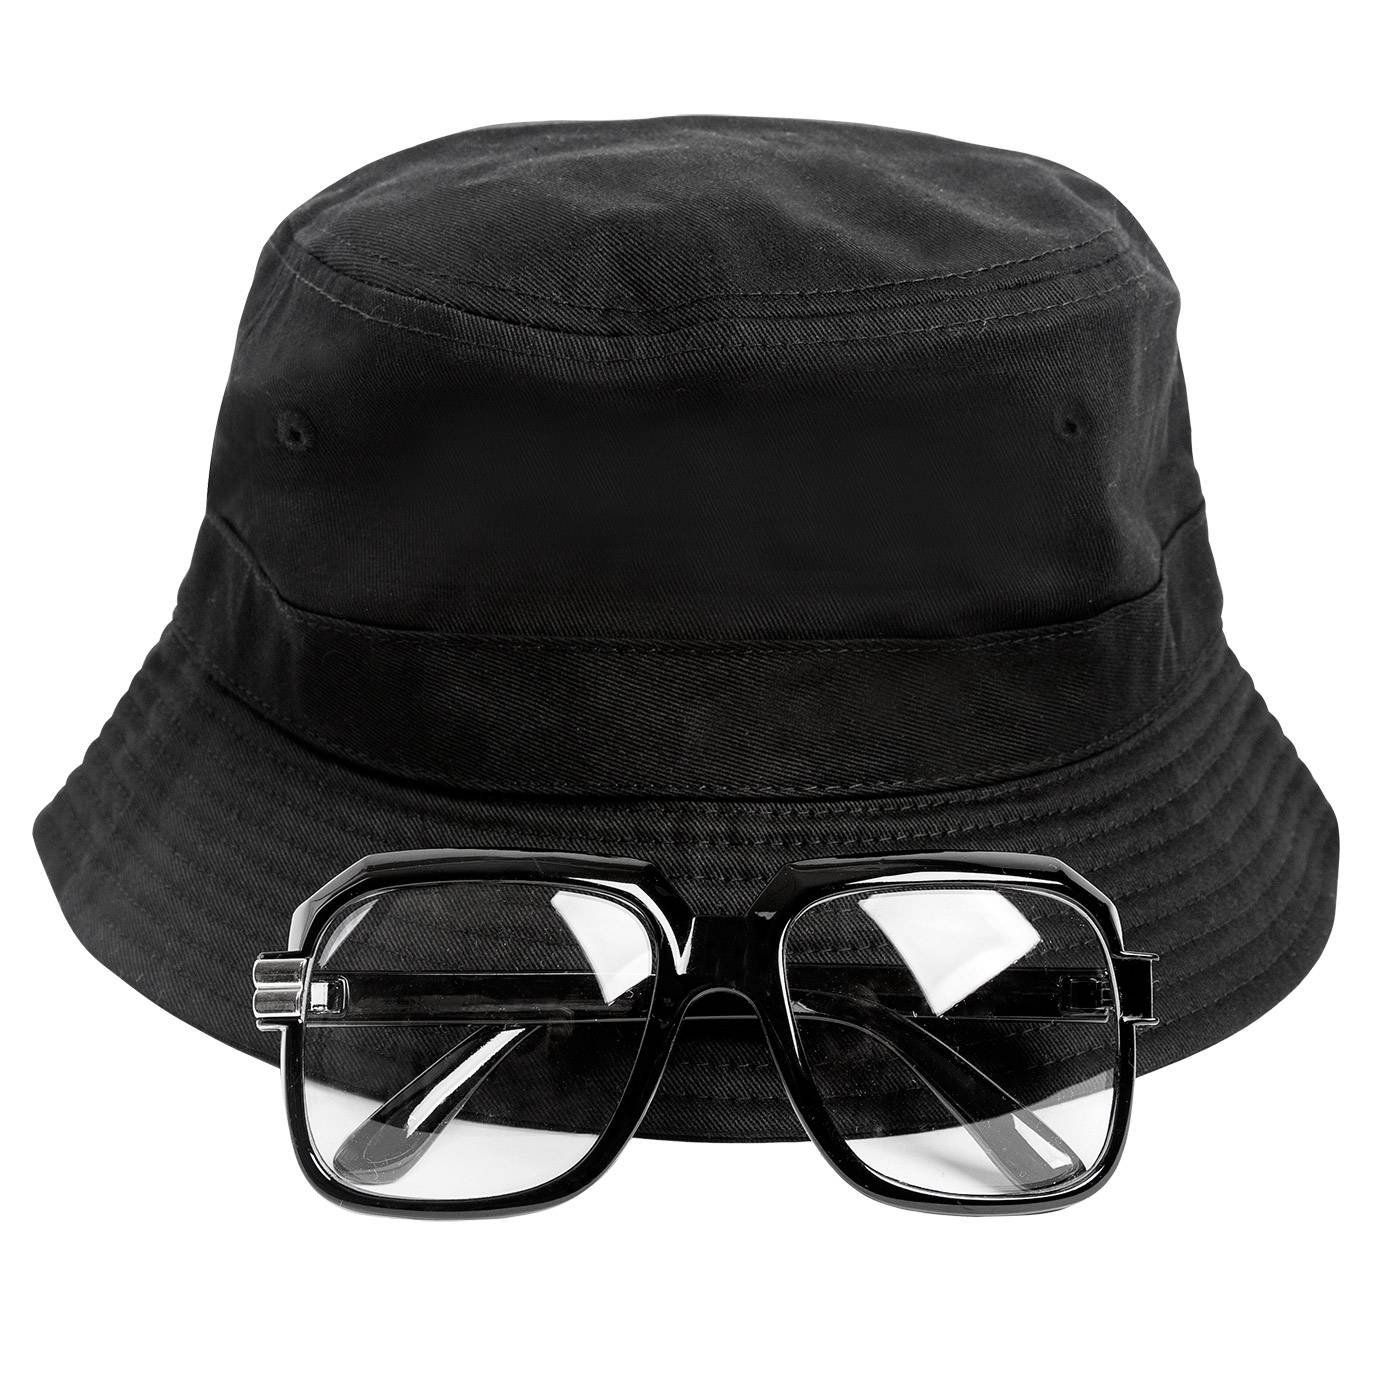 Gravity Trading 80s/90s Hip-Hop Costume Kit (Bucket Hat + Old School Squared Glasses) Black L/XL by Gravity Trading